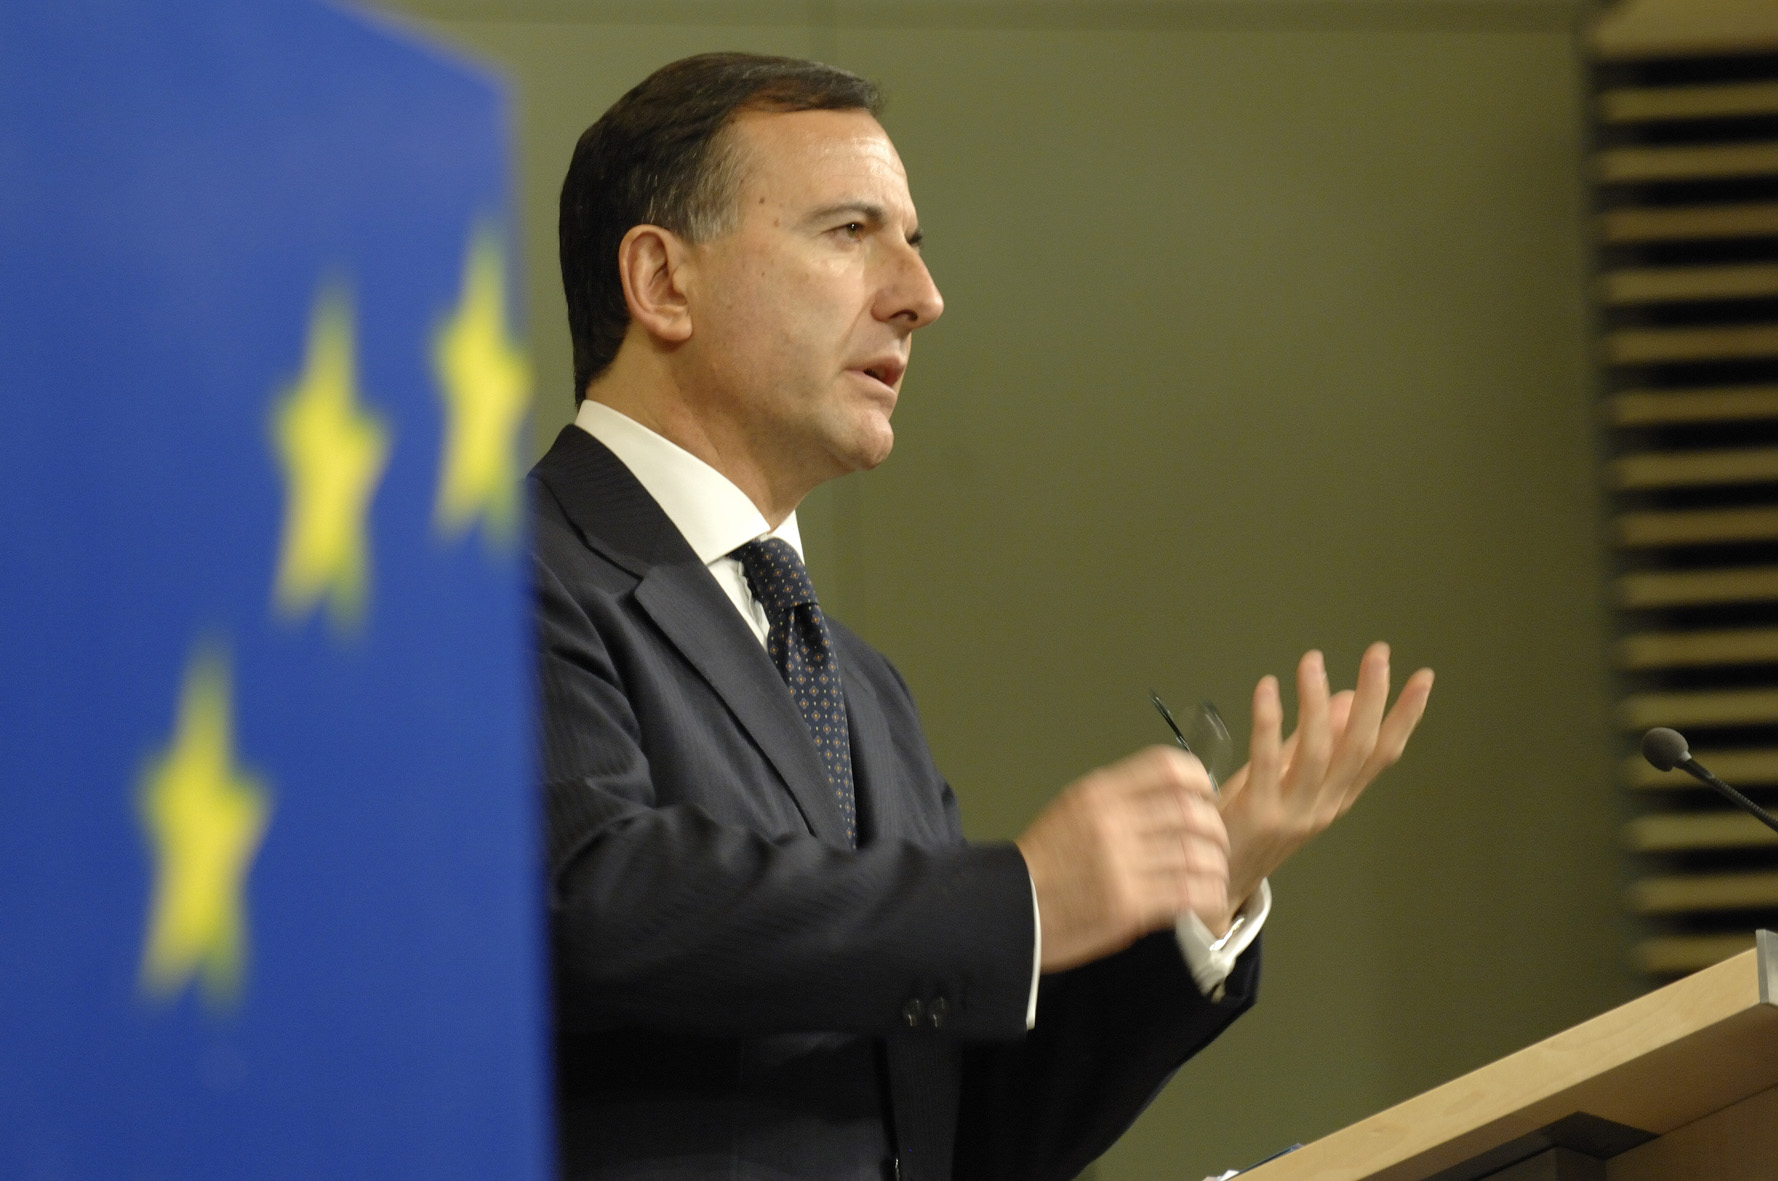 Press conference by Franco Frattini on a comprehensive vision for an integrated European border management system for the 21st Century